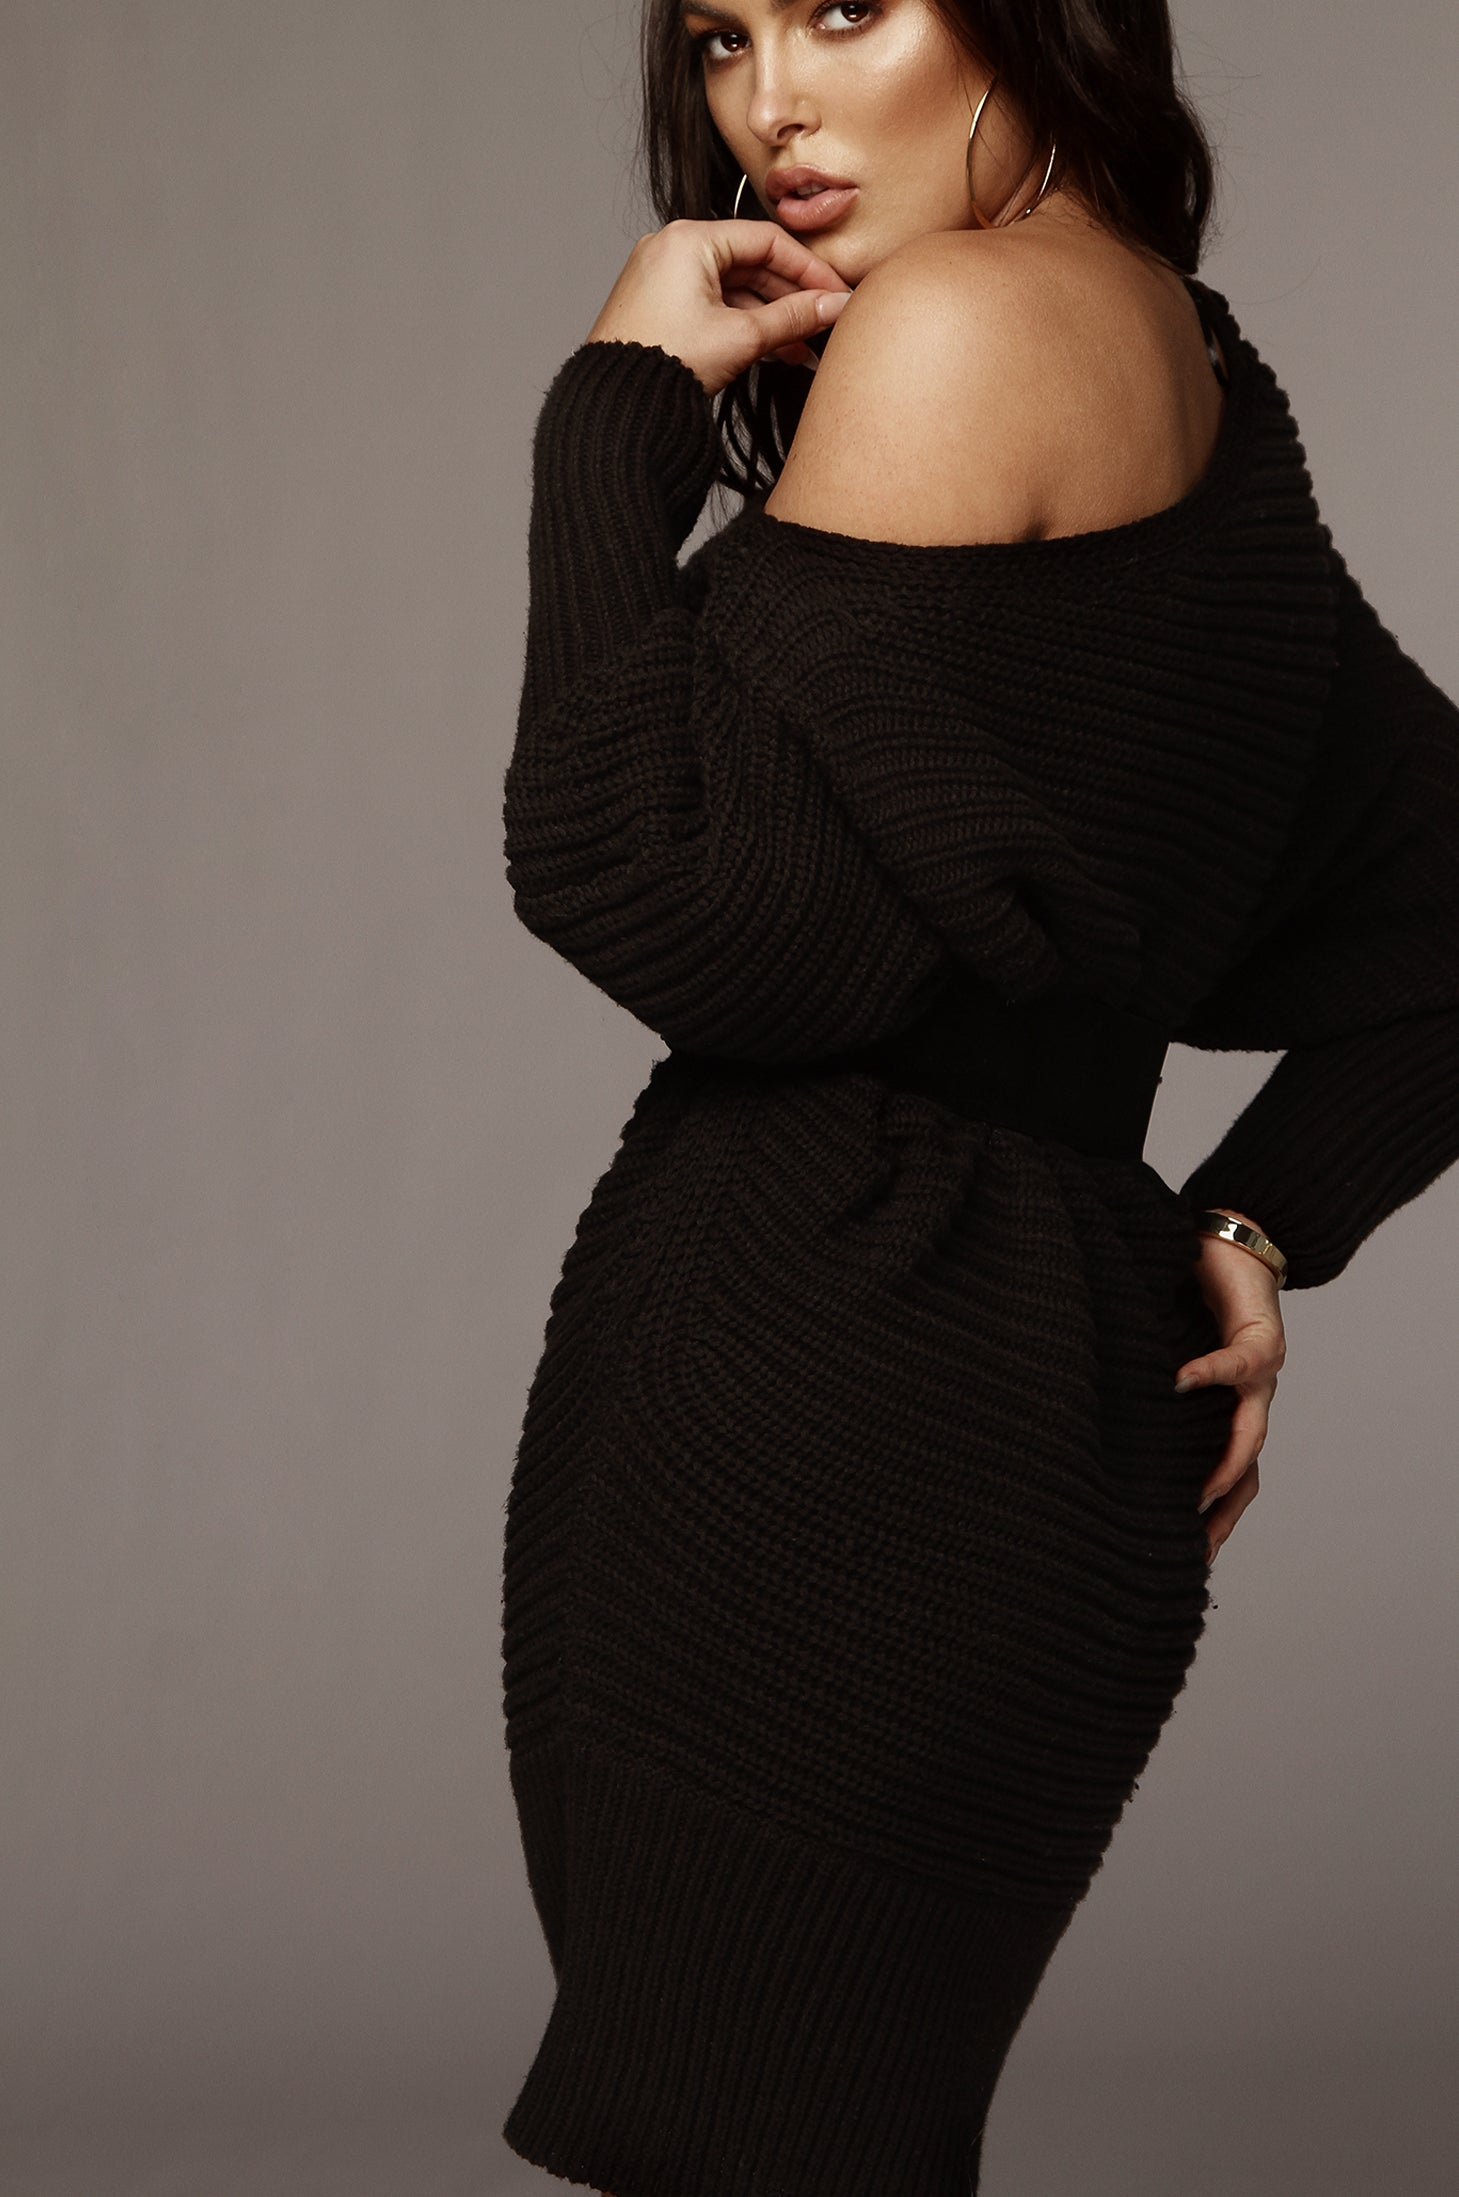 Black Kathy Knit Sweater Dress